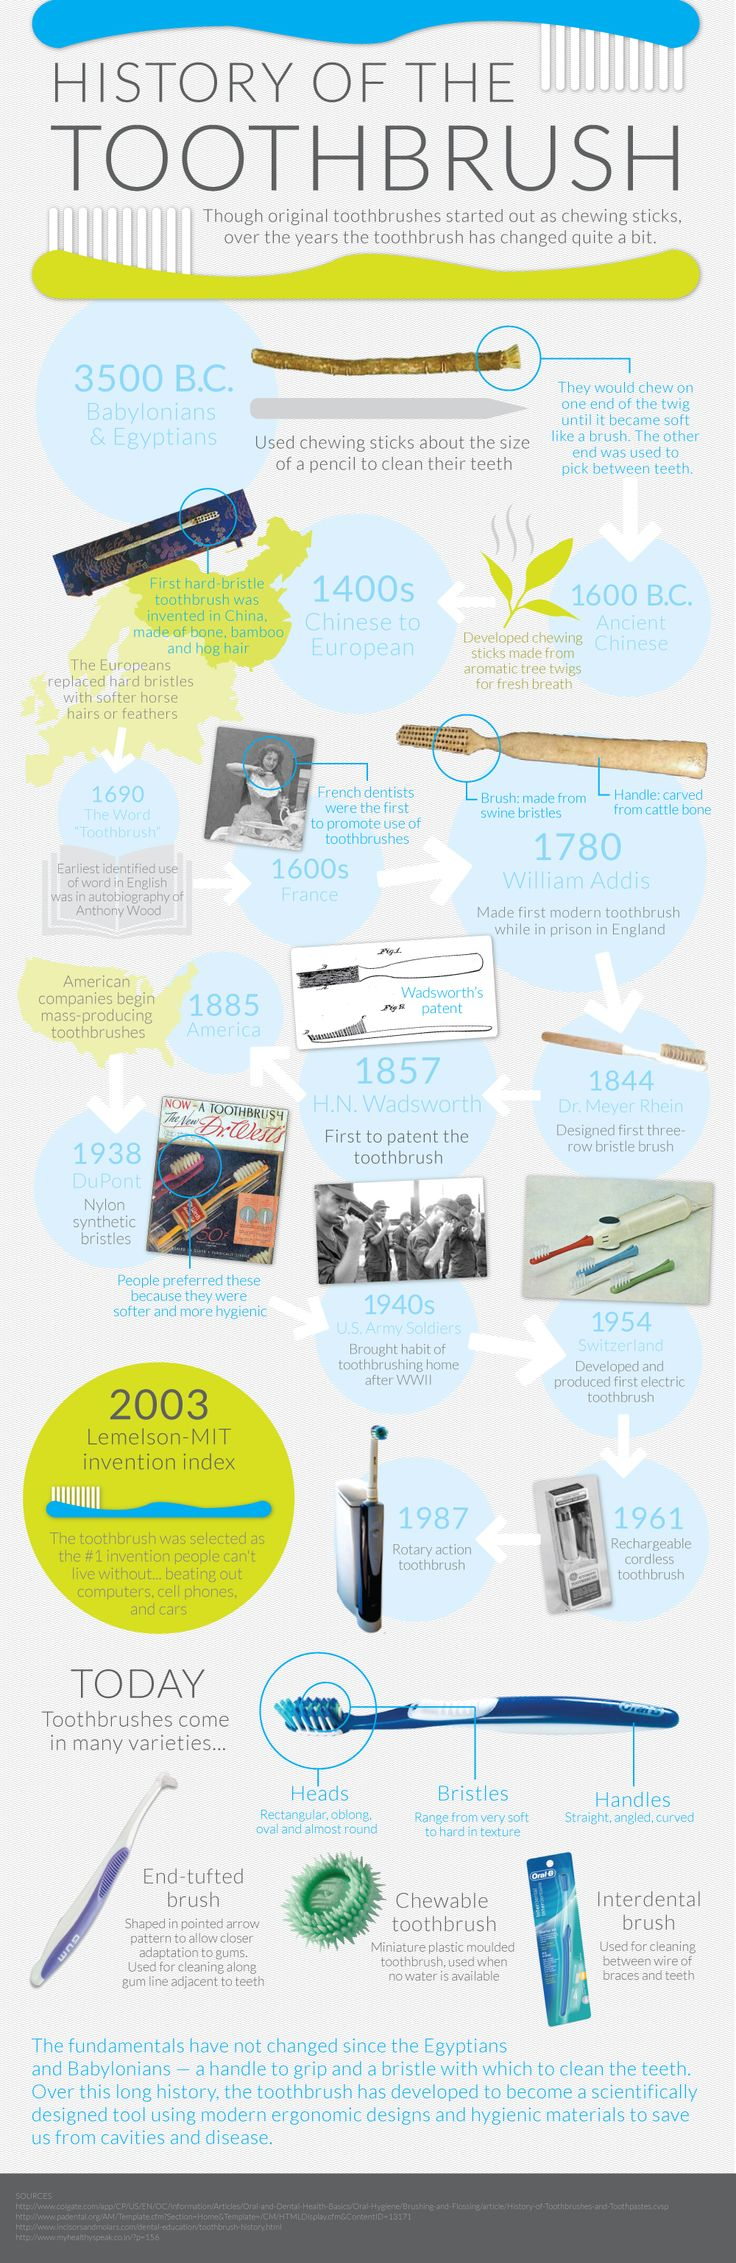 How the toothbrush came about! Children's Dentistry, pediatric dentist in Bountiful, UT @ www.utahchildrensdentistry.com